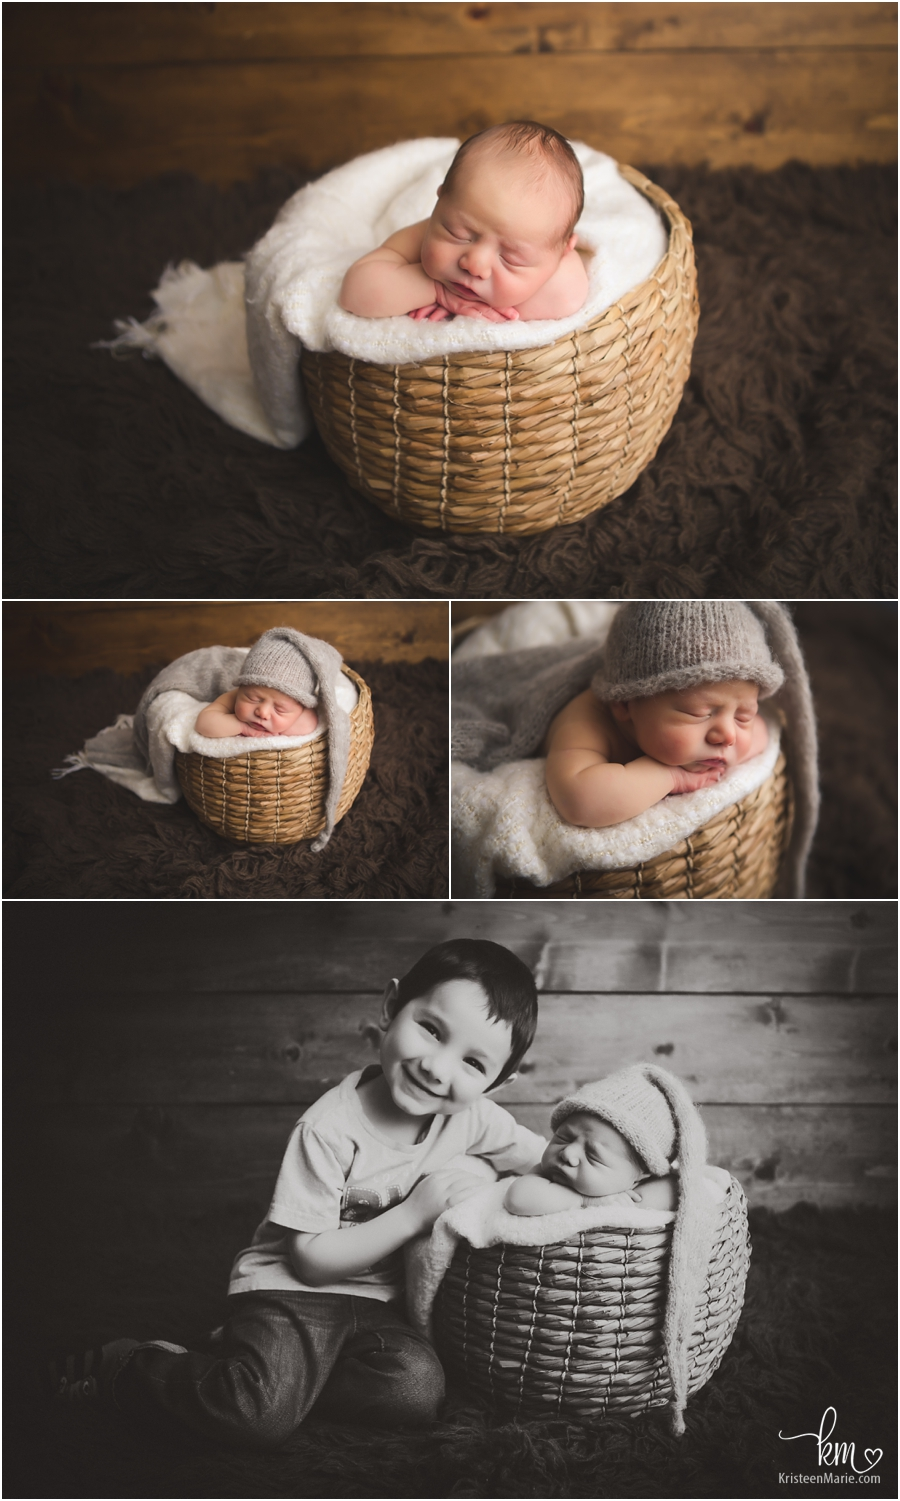 baby in a wicker basket - newborn photography in Indianapolis